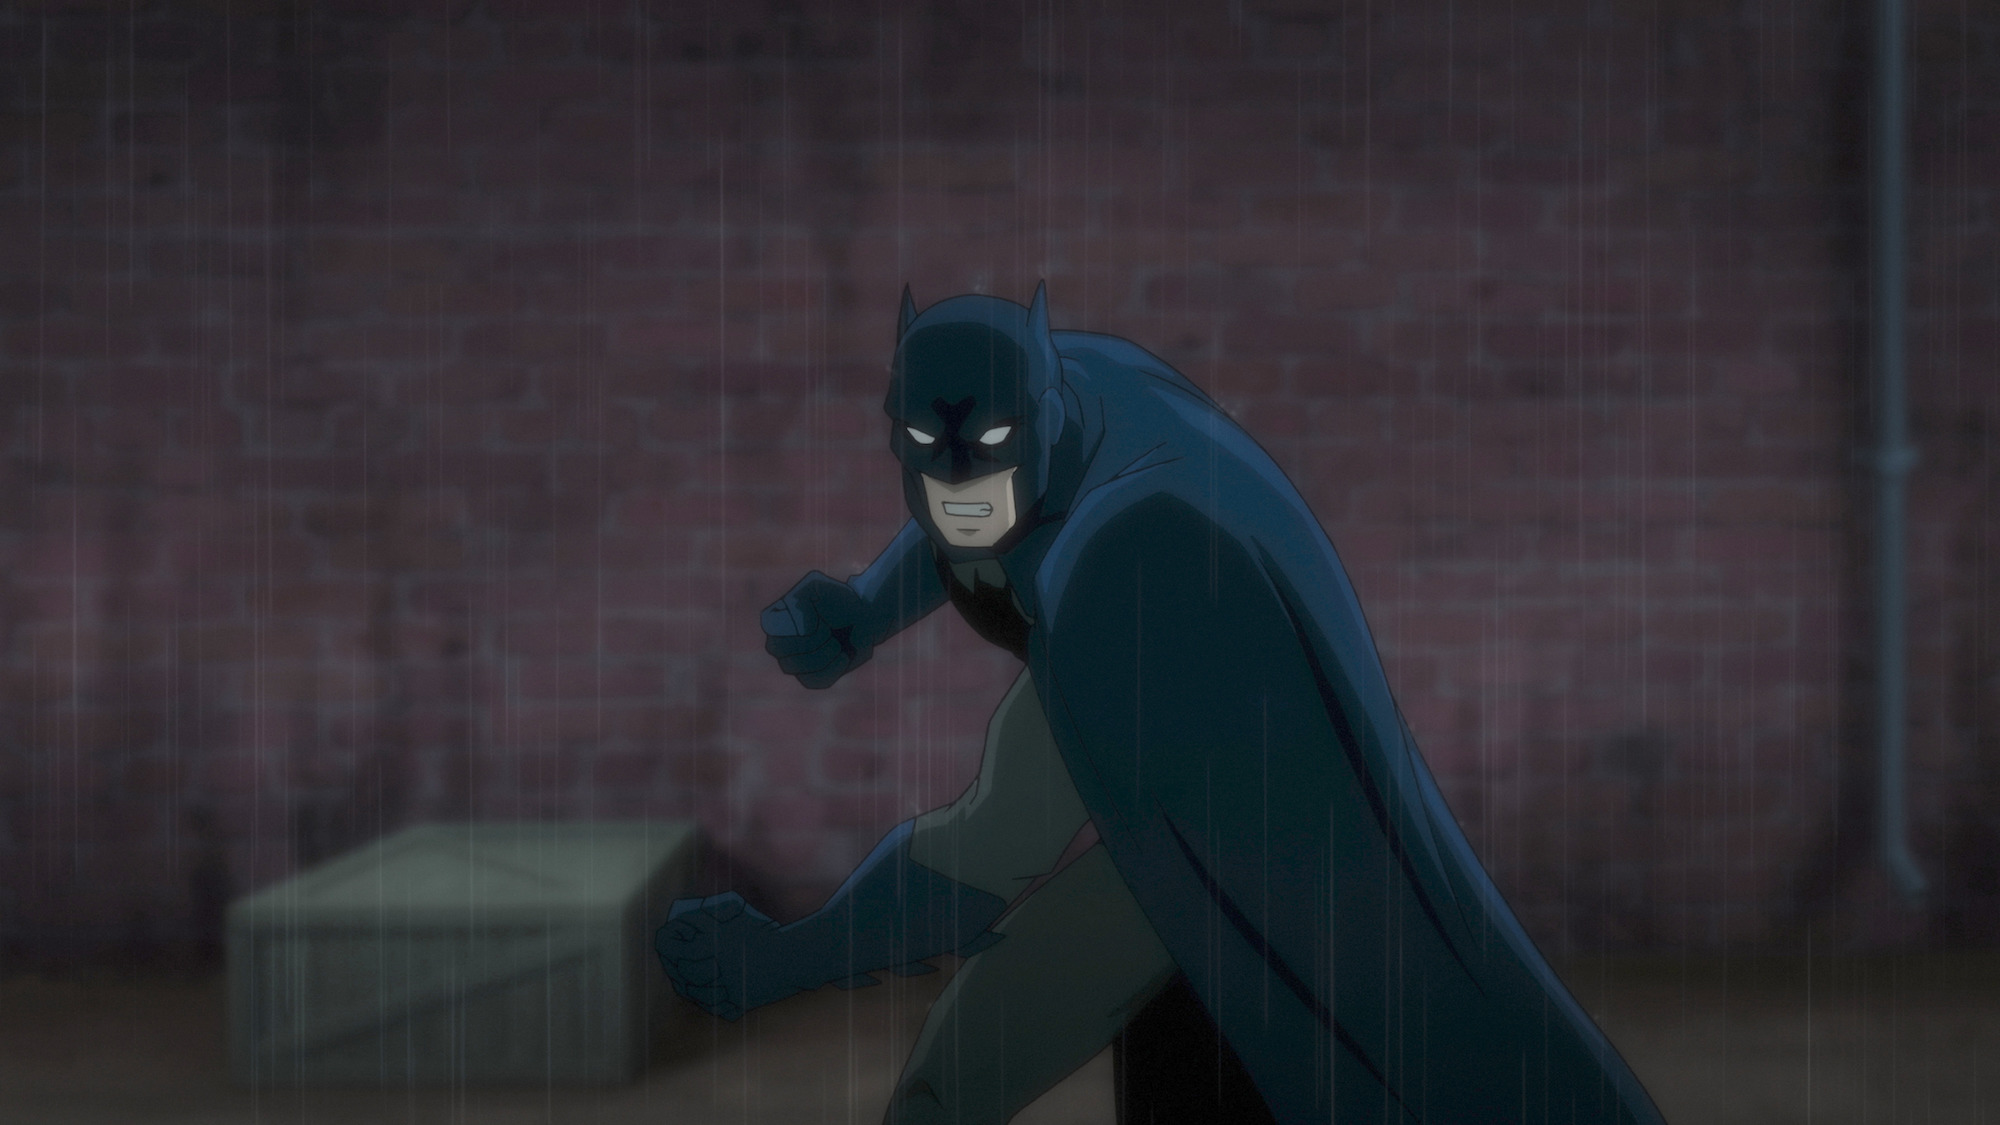 186_BatmanHush_Stills-07.jpg